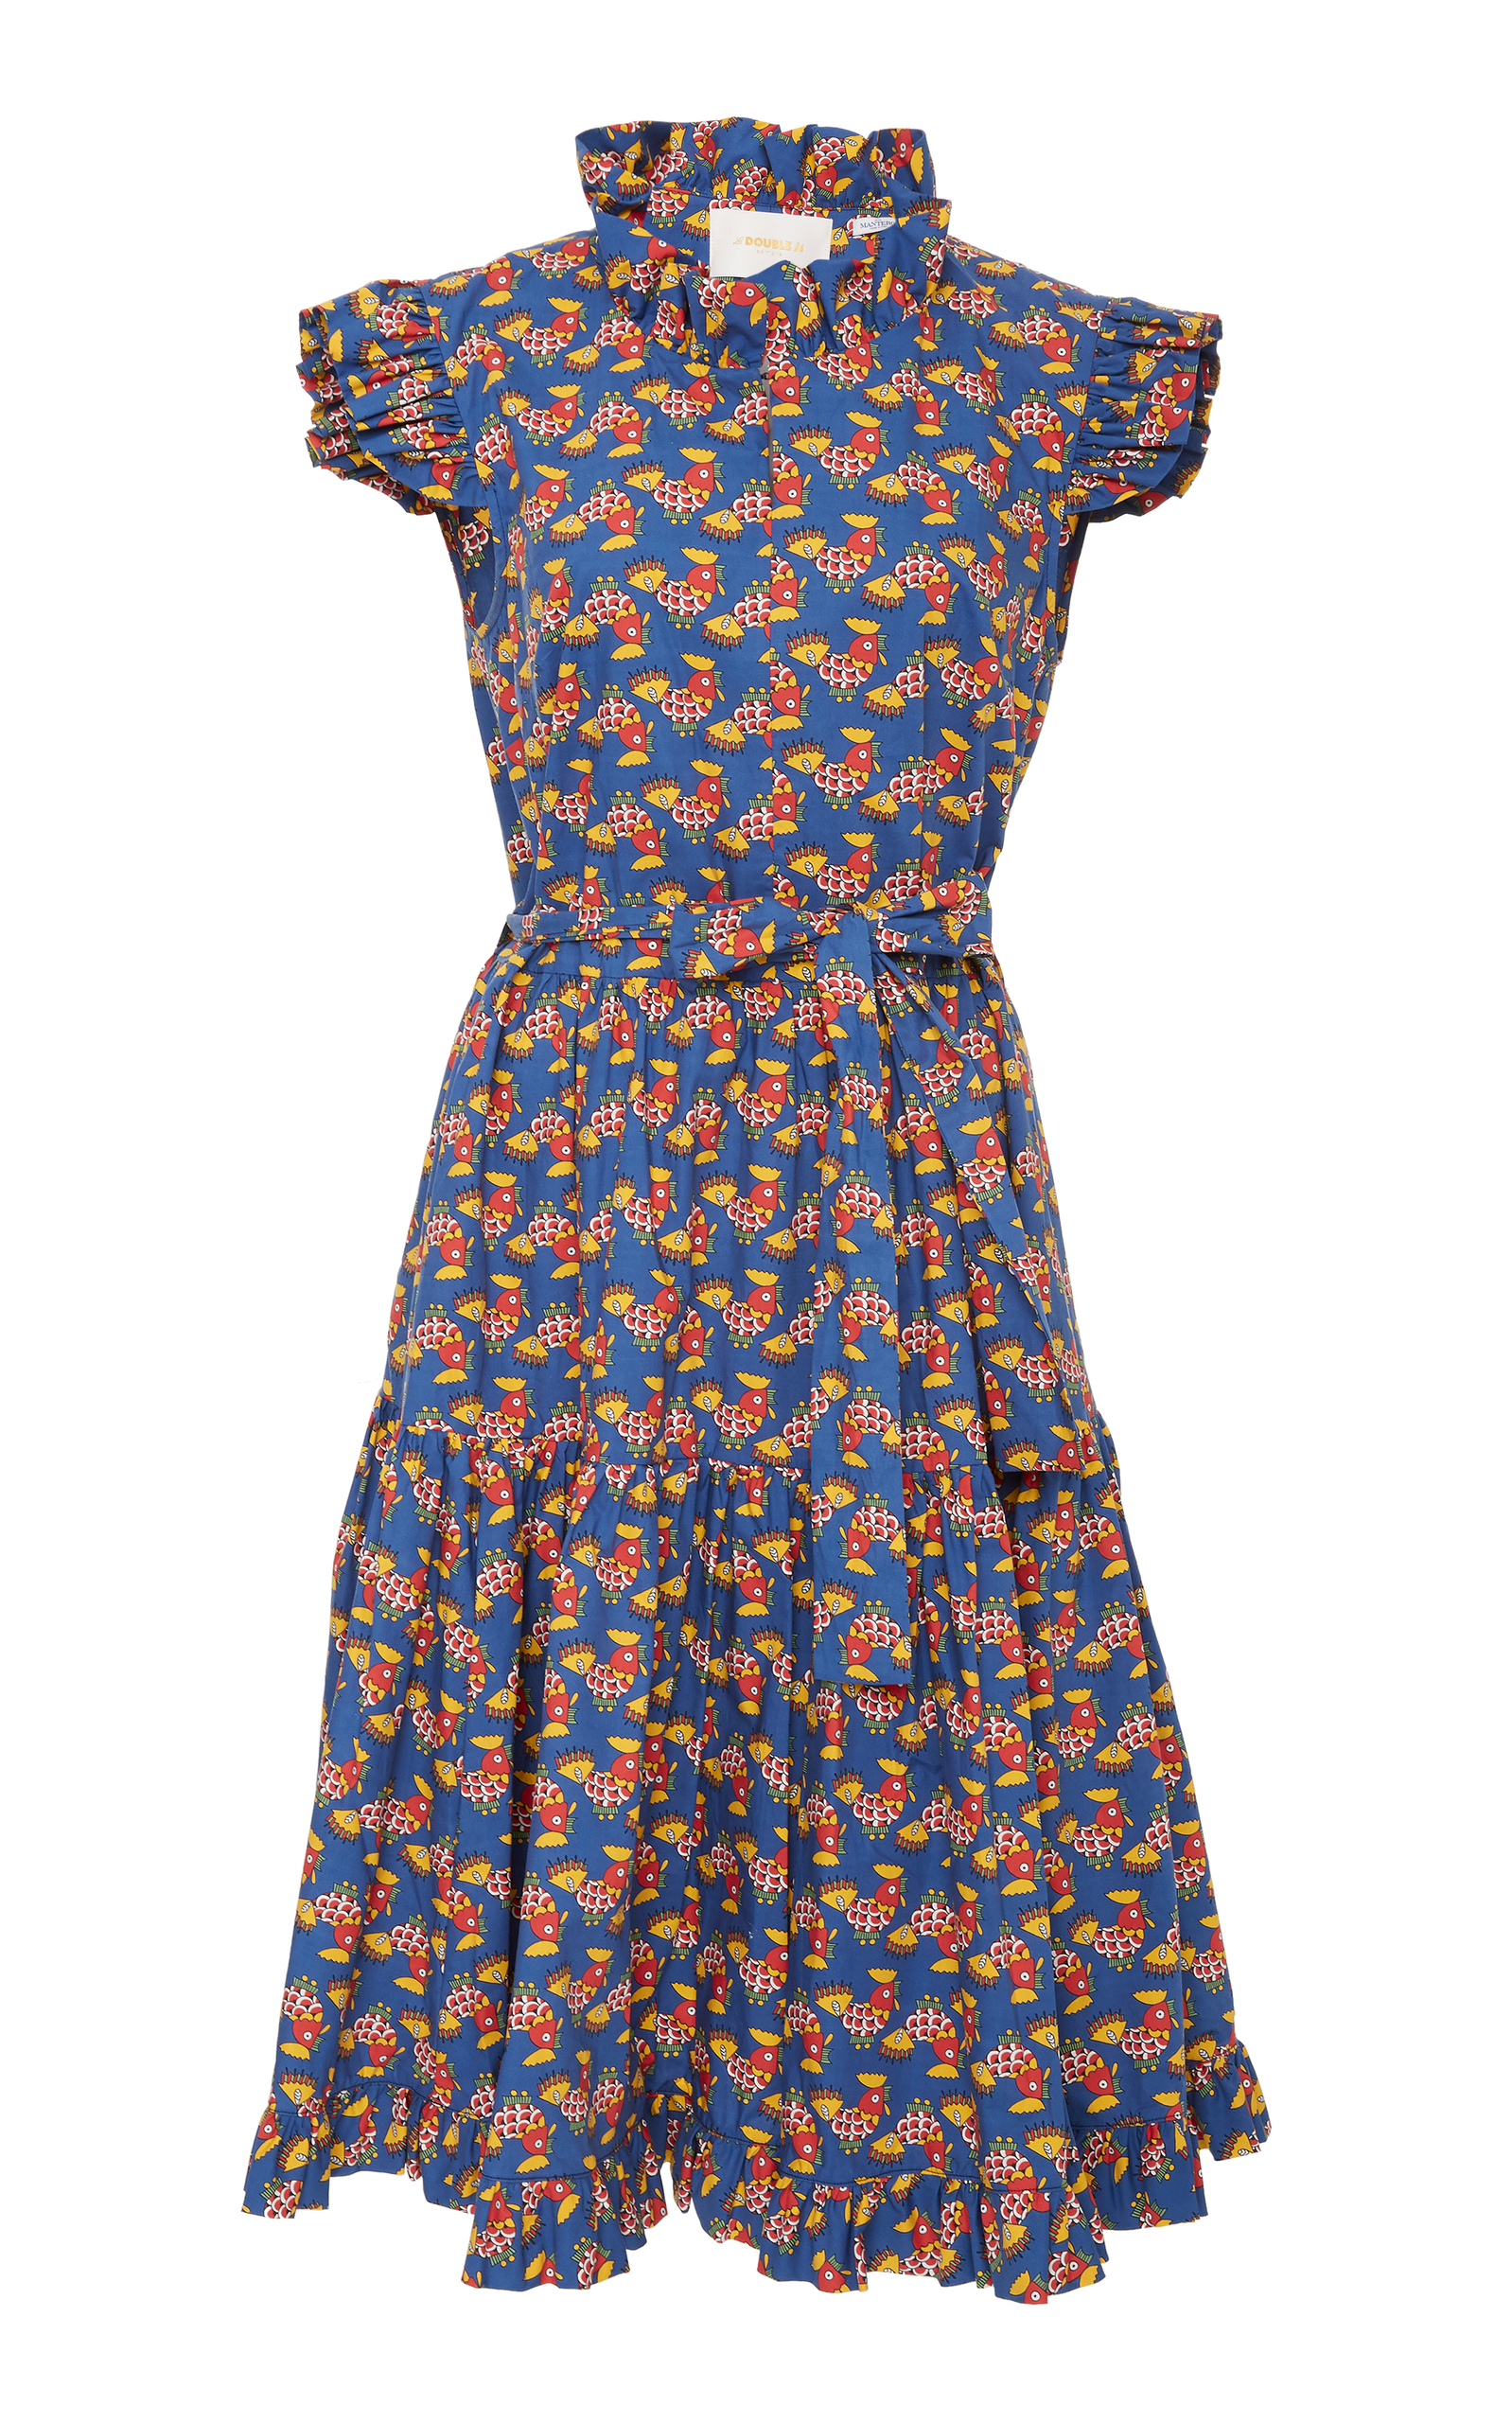 Short and Sassy Belted Ruffled Cotton Dress La DoubleJ i1r8ZQooZL